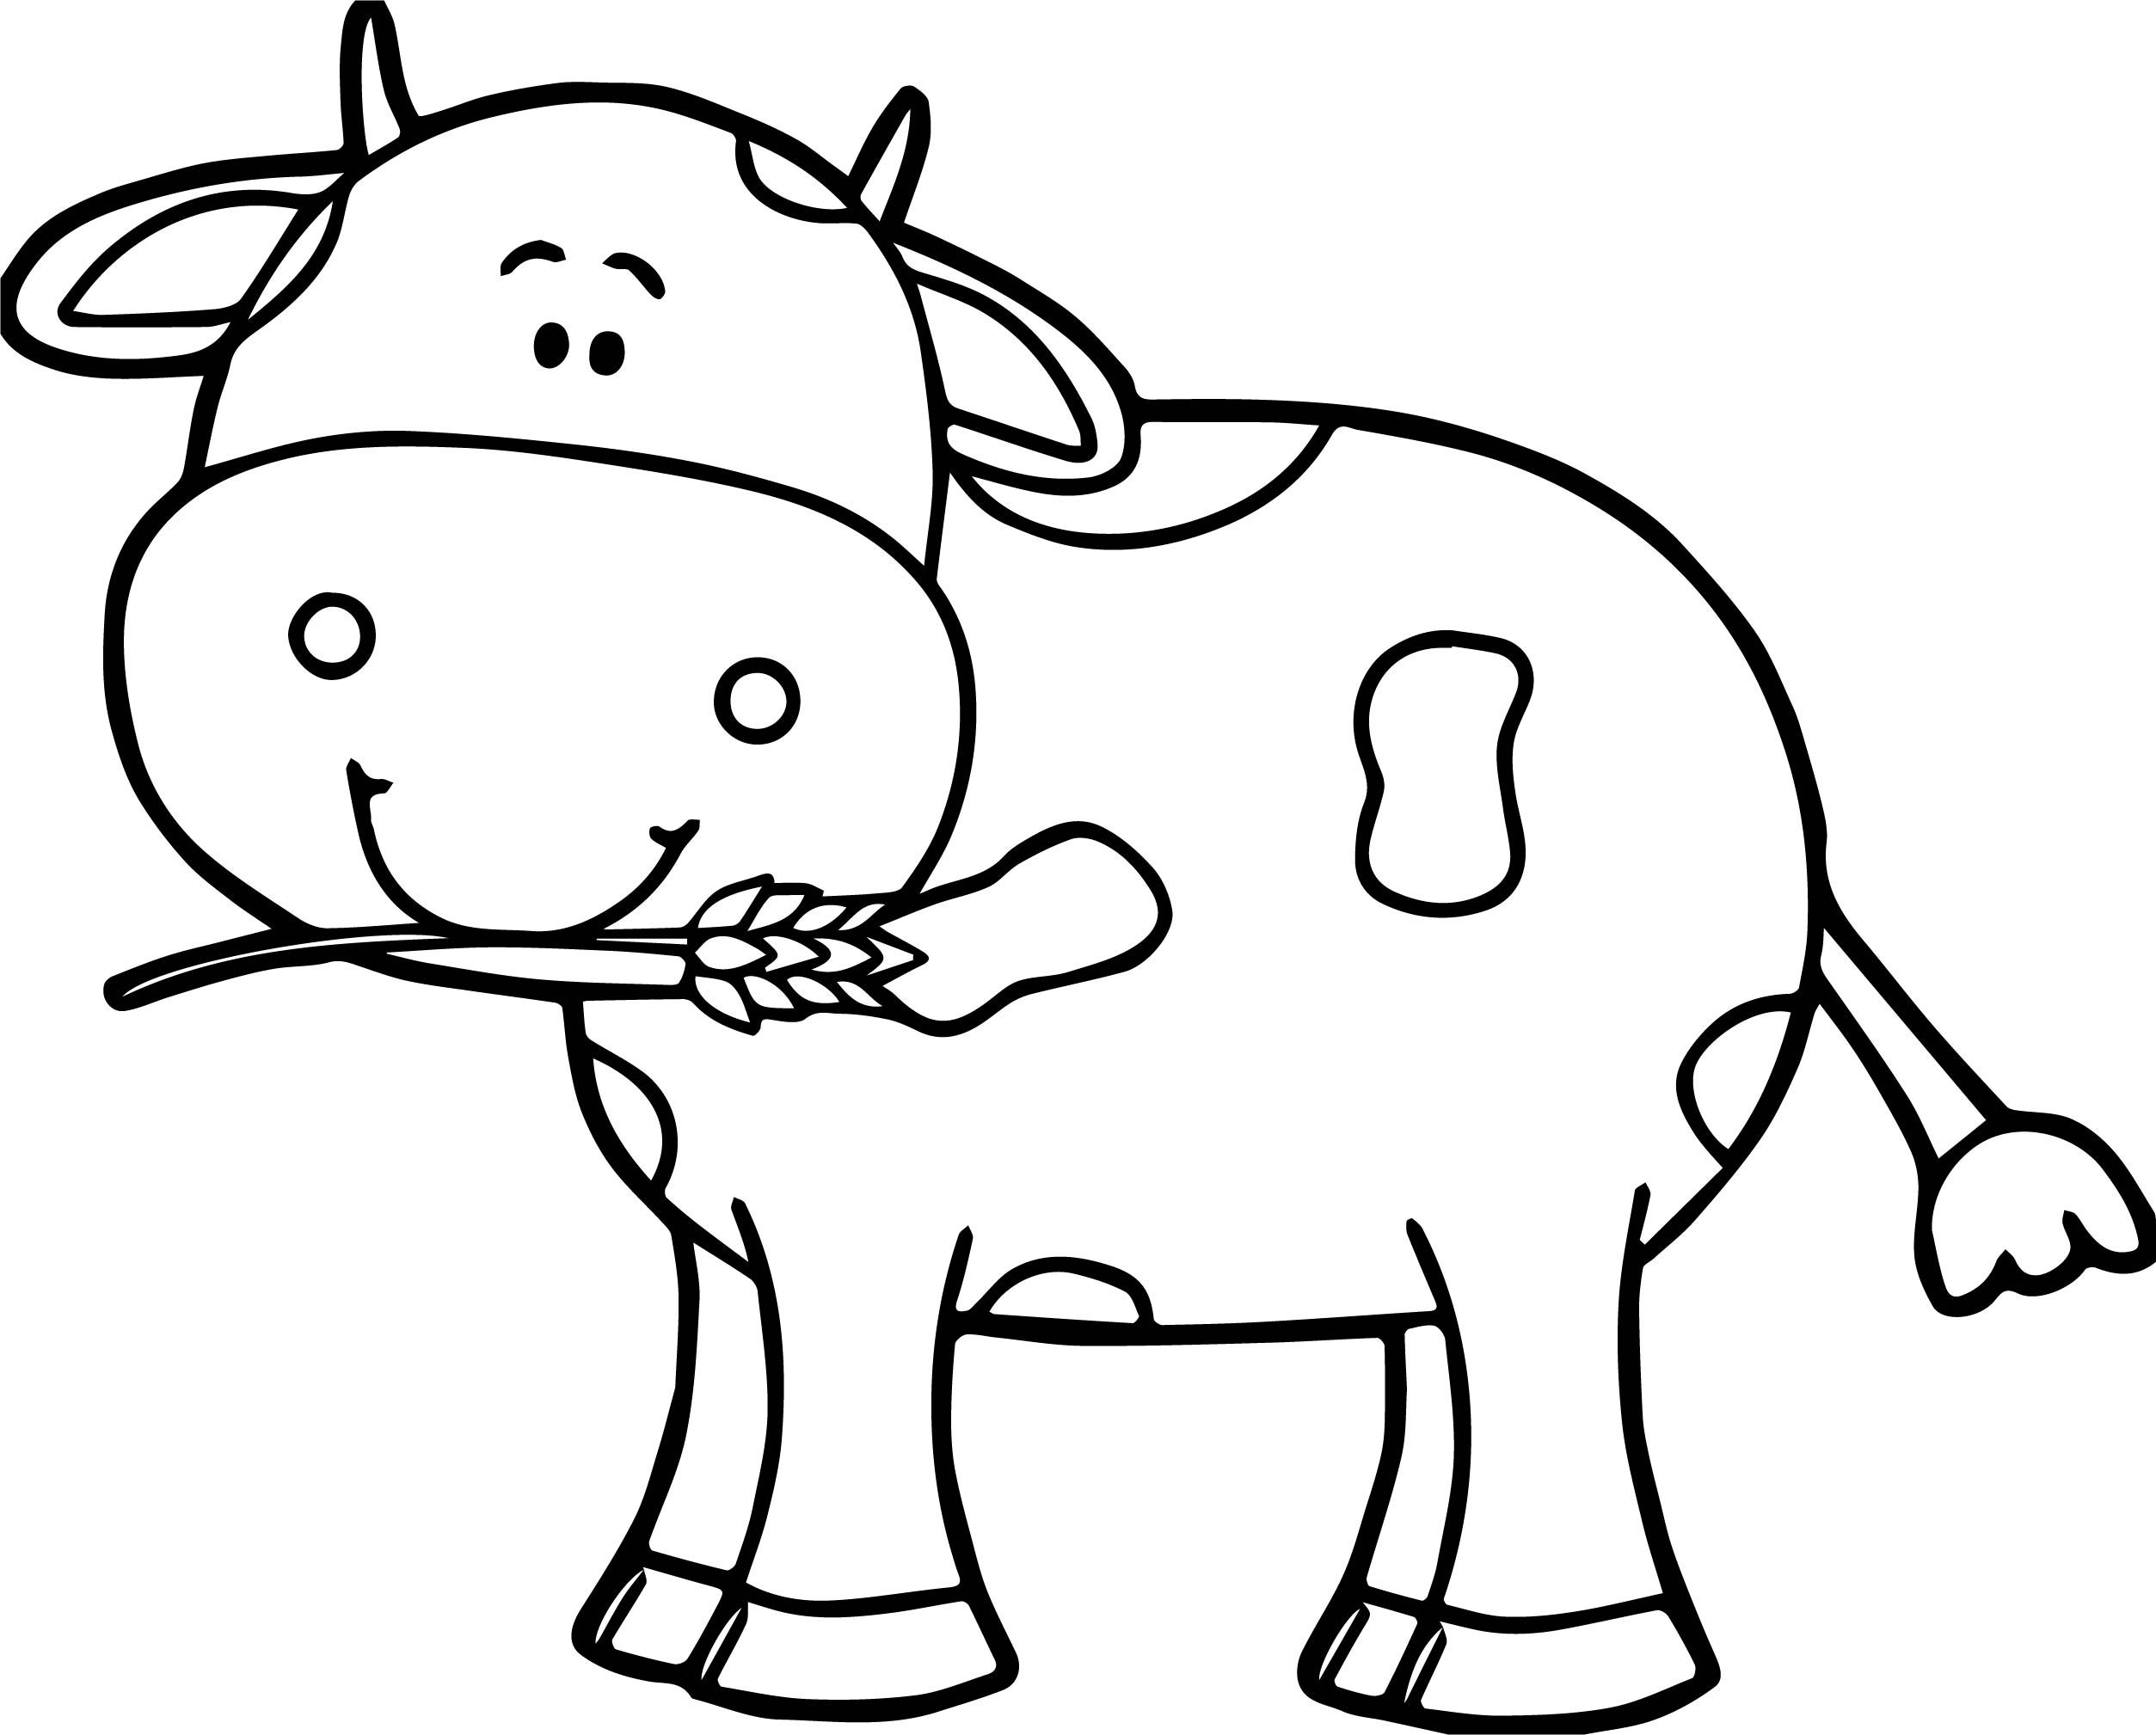 dairy cow coloring pages dairy cow coloring pages at getcoloringscom free coloring dairy pages cow